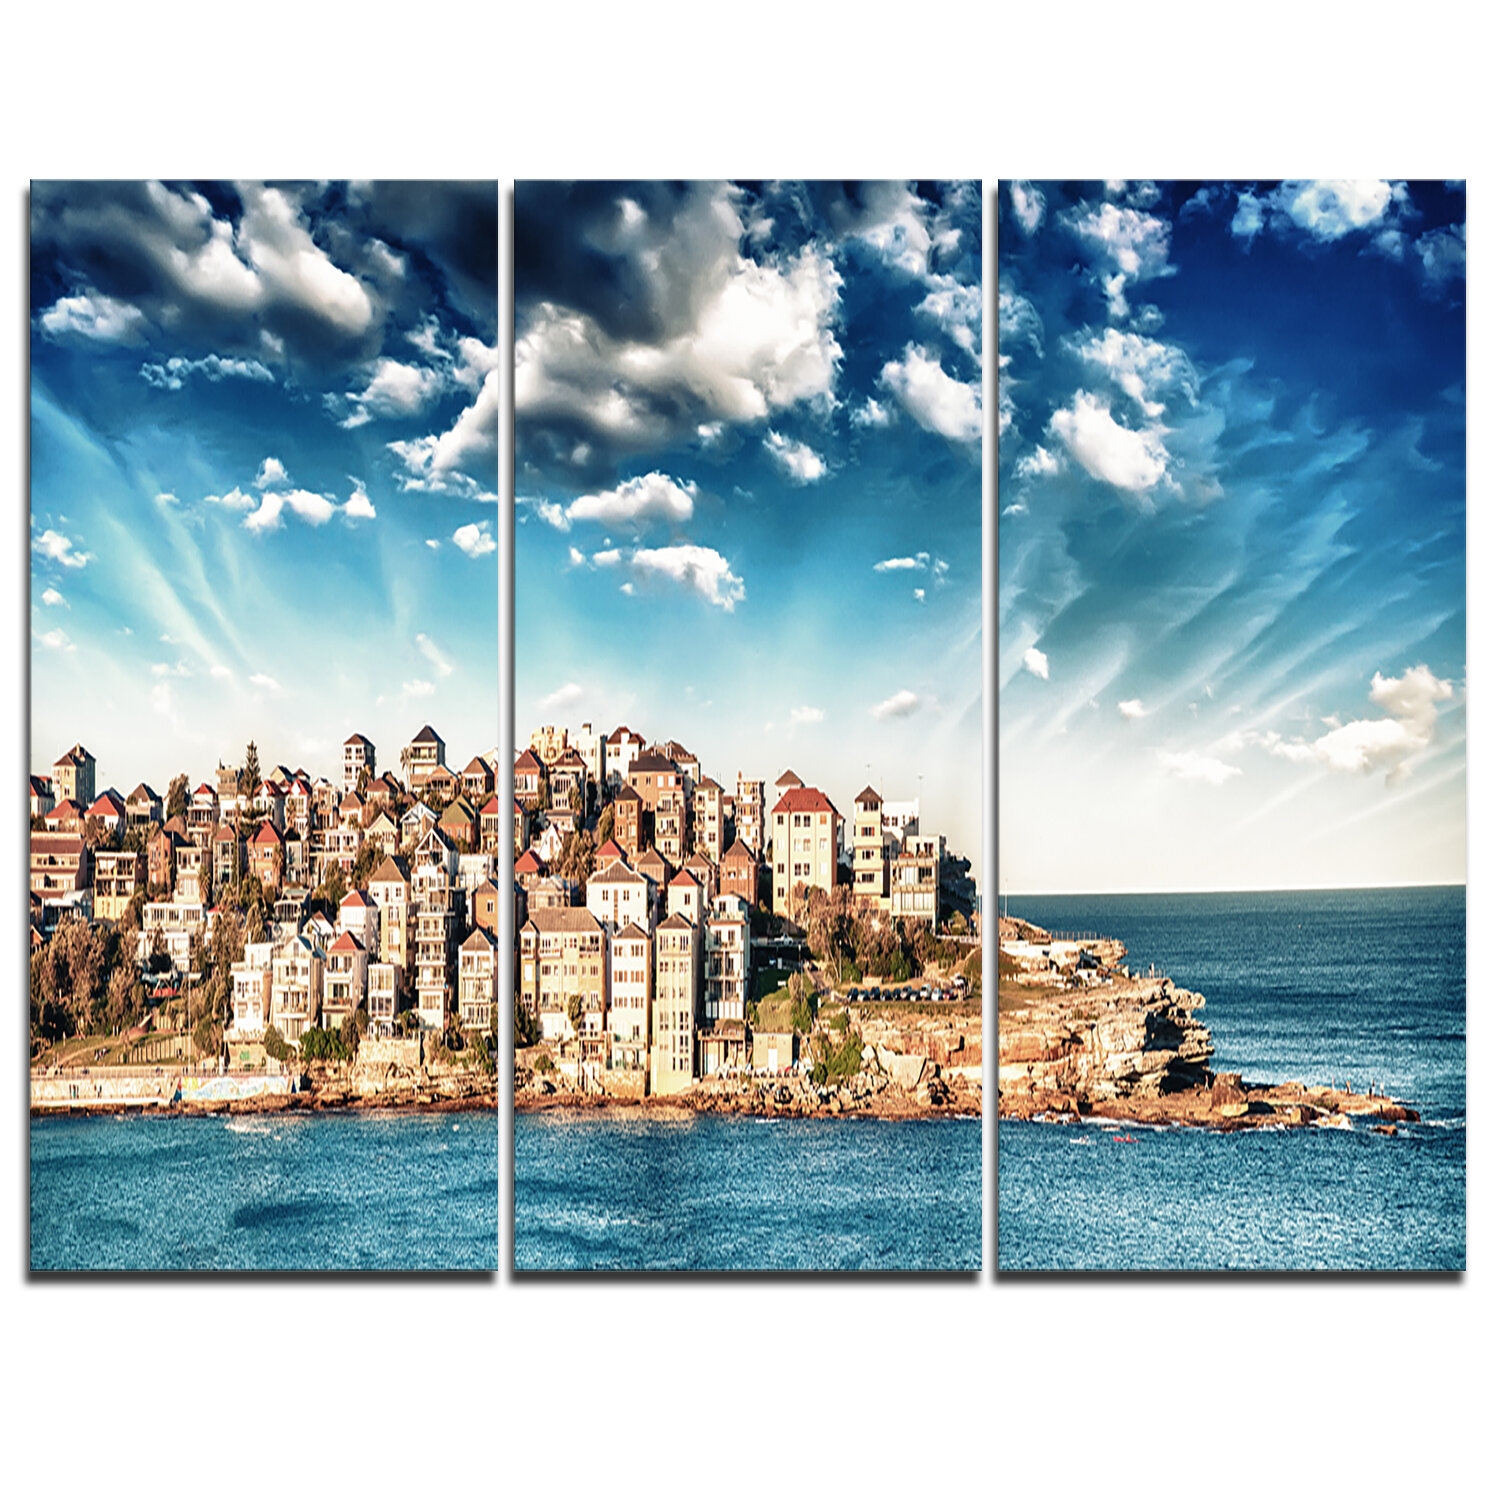 Designart Sydney Bondi Beach Panorama 3 Piece Graphic Art On Wrapped Canvas Set Wayfair